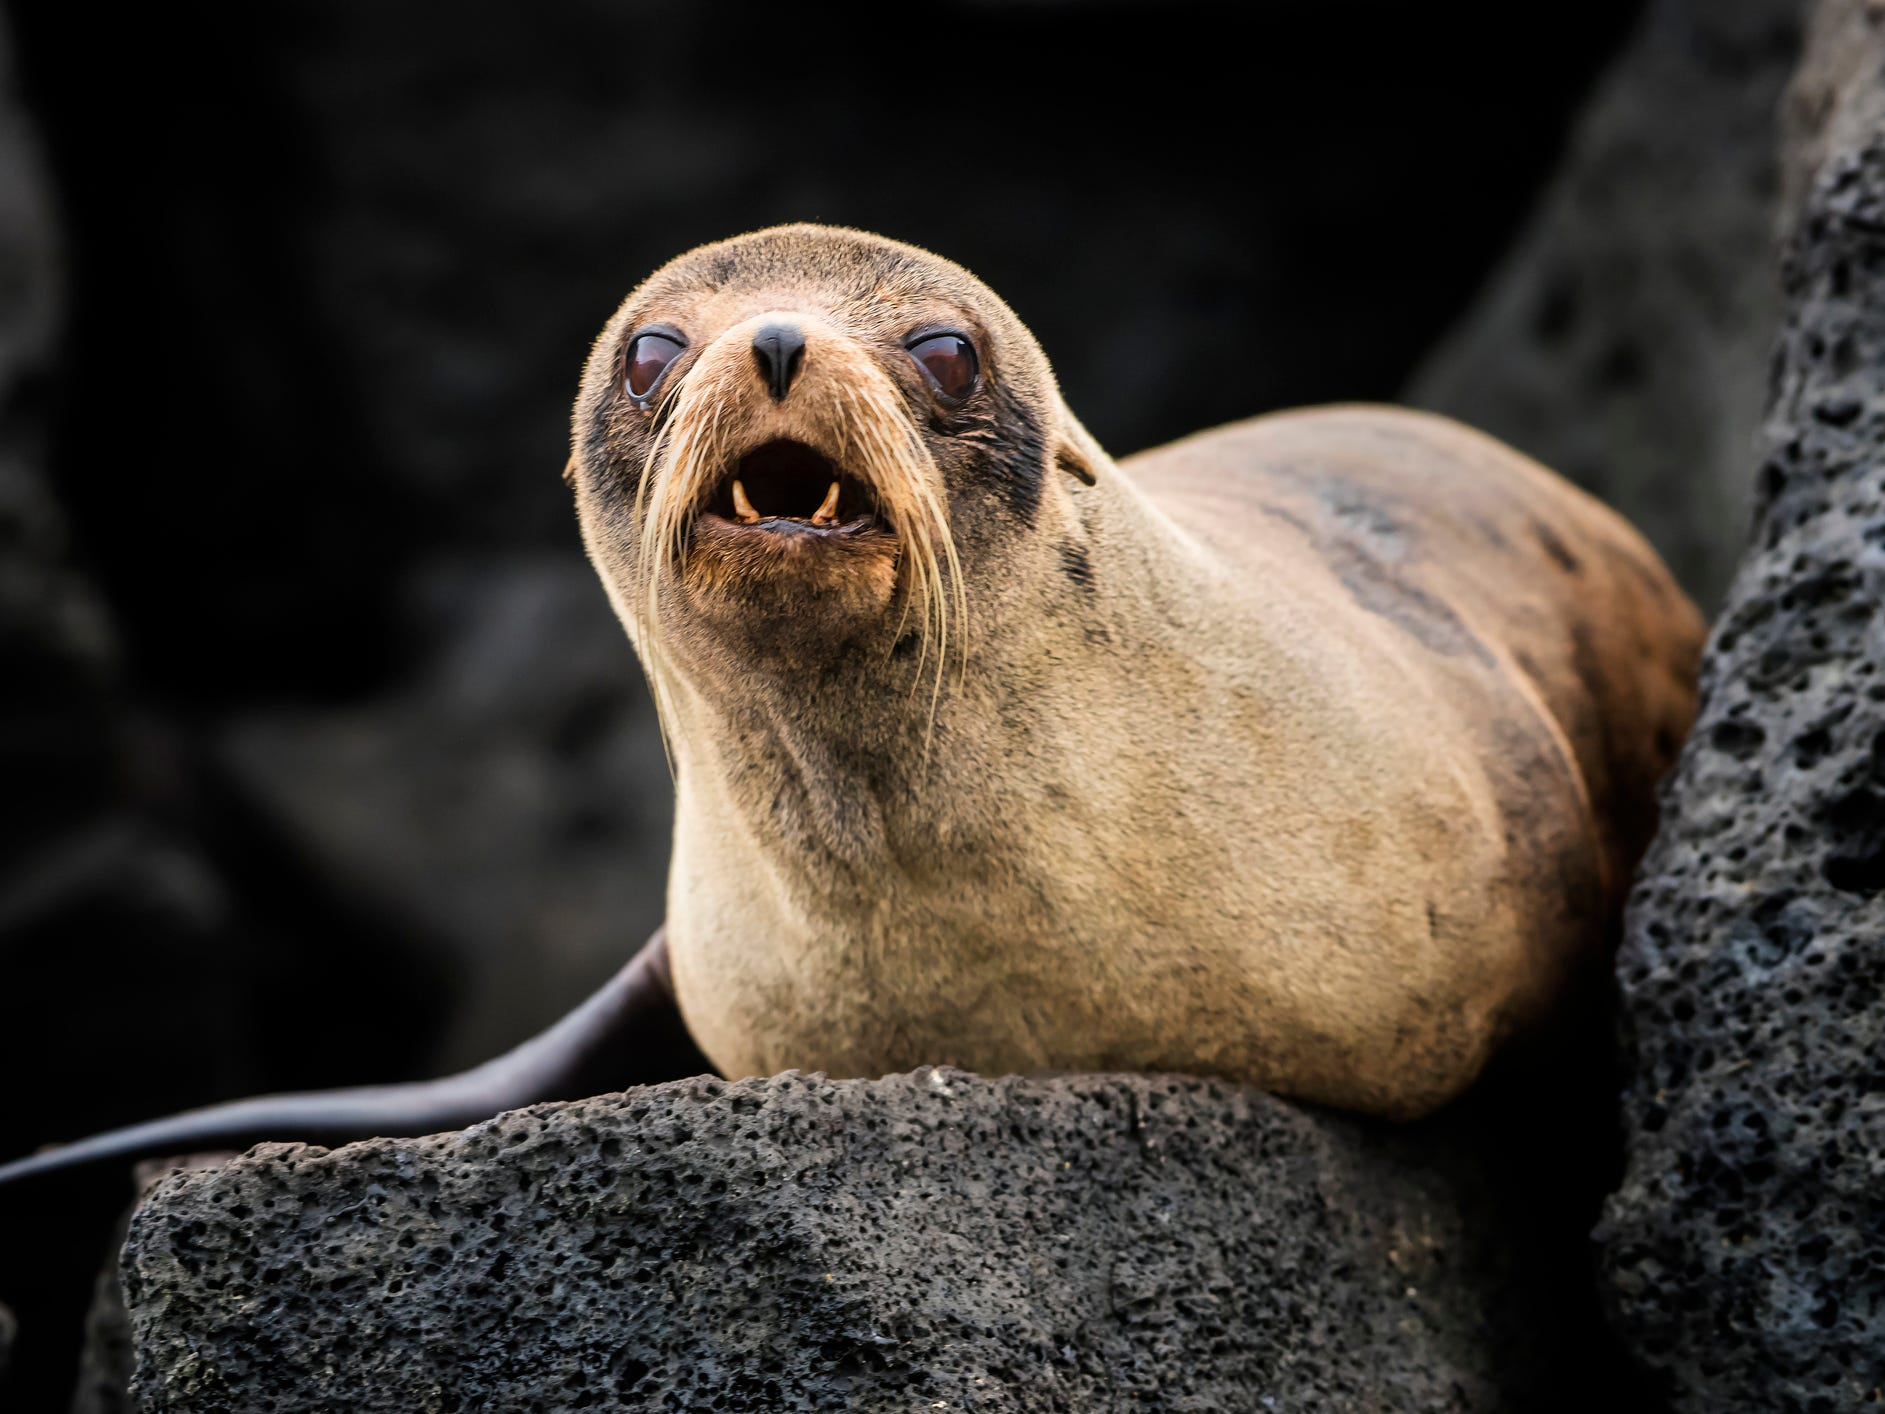 A fur seal in the Galapagos Islands, Ecuador.